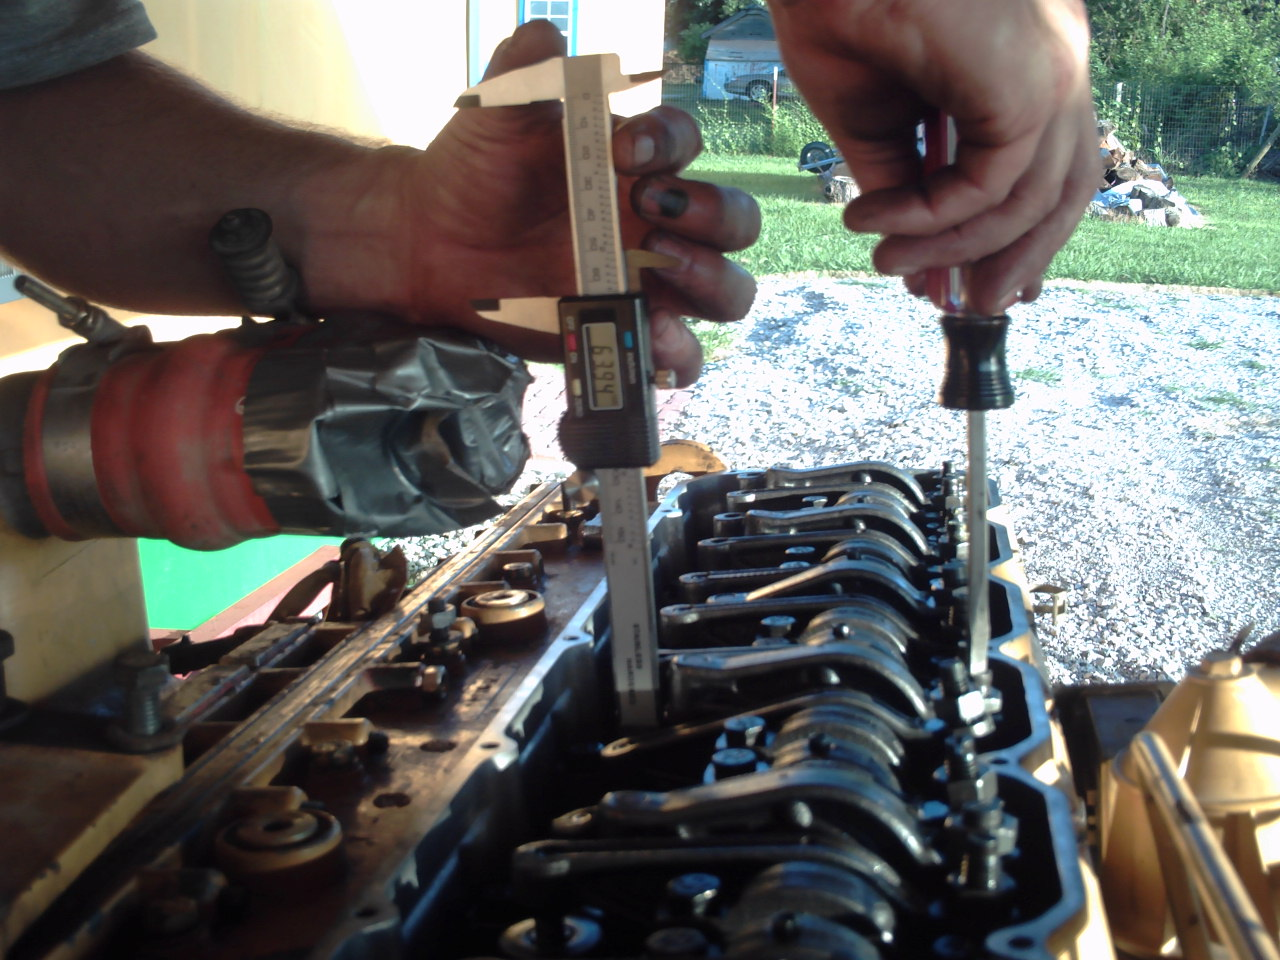 (7) Setting the injector timing is simply a matter of using a caliper to  measure the height of the injector's spring.